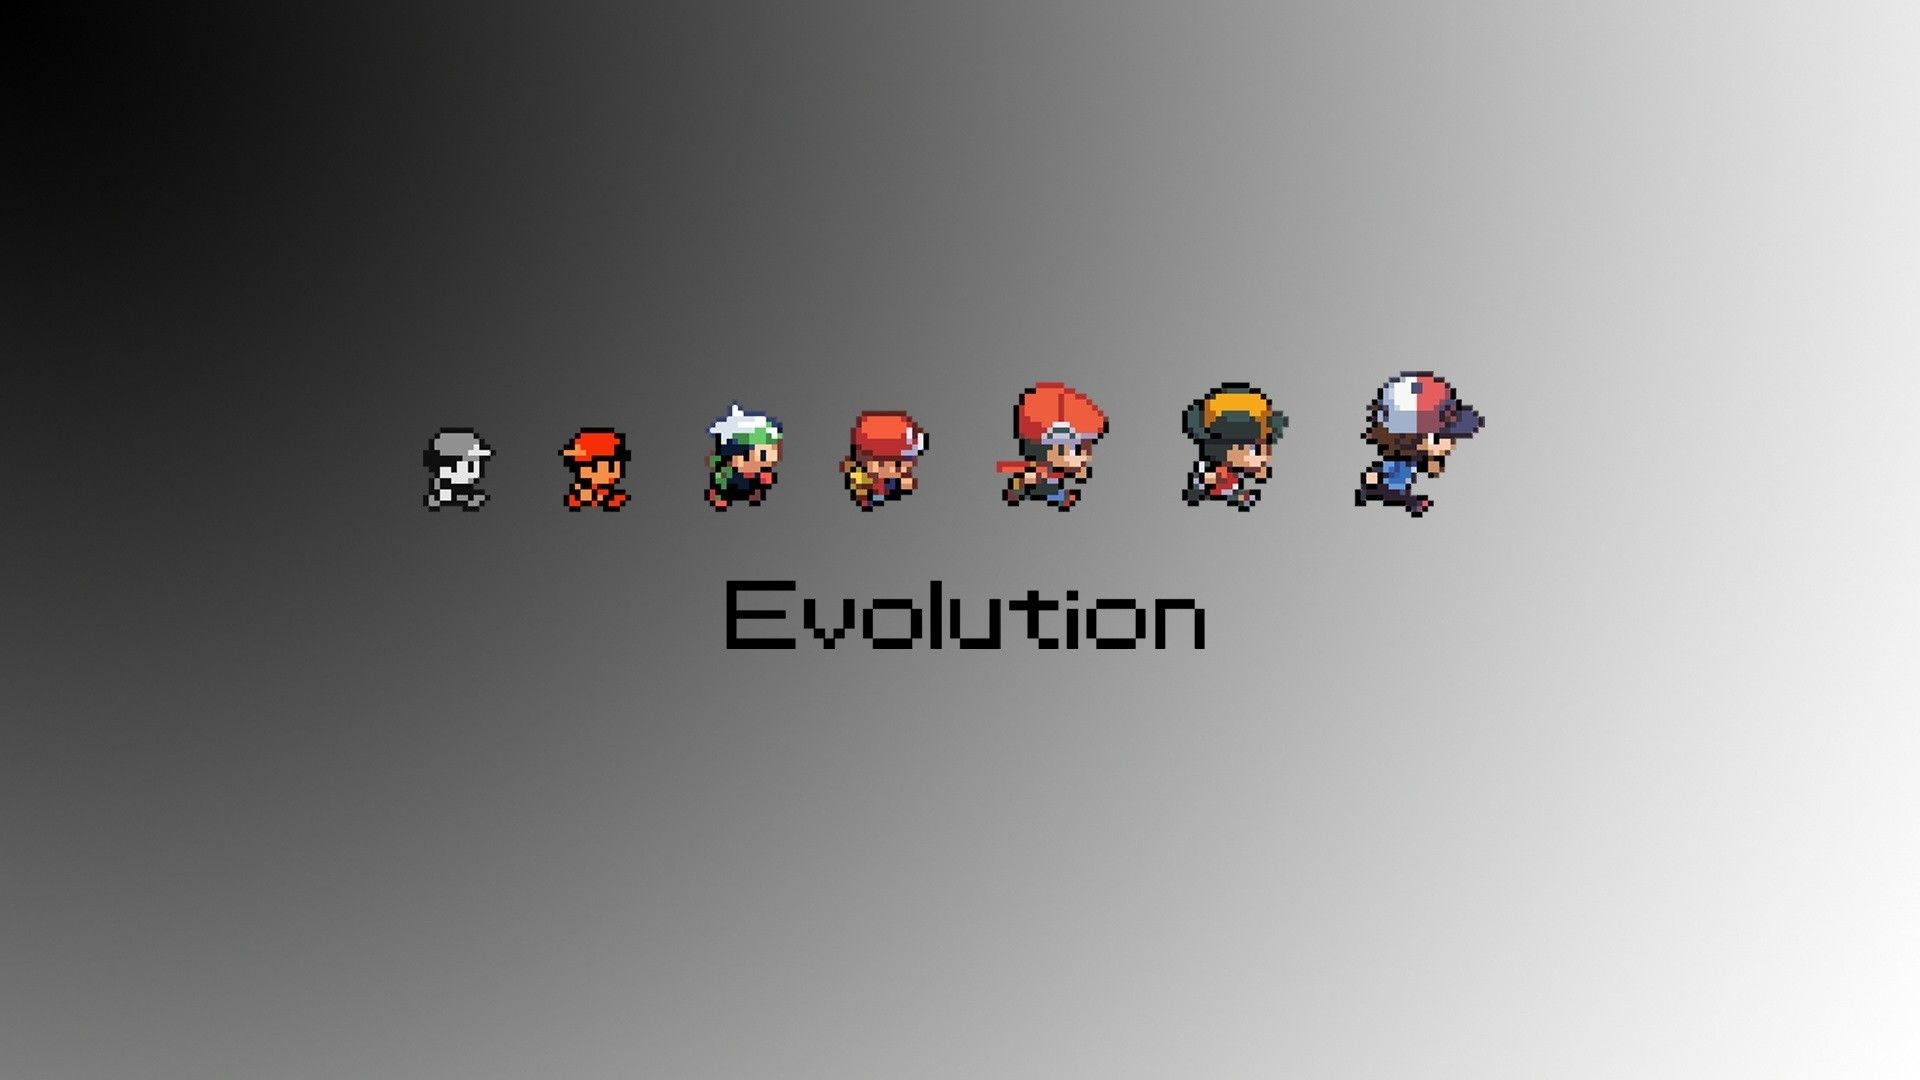 1920x1080 Pokemon wallpaper here in high quality | HD Wallpapers | Pinterest |  Wallpaper and Hd wallpaper